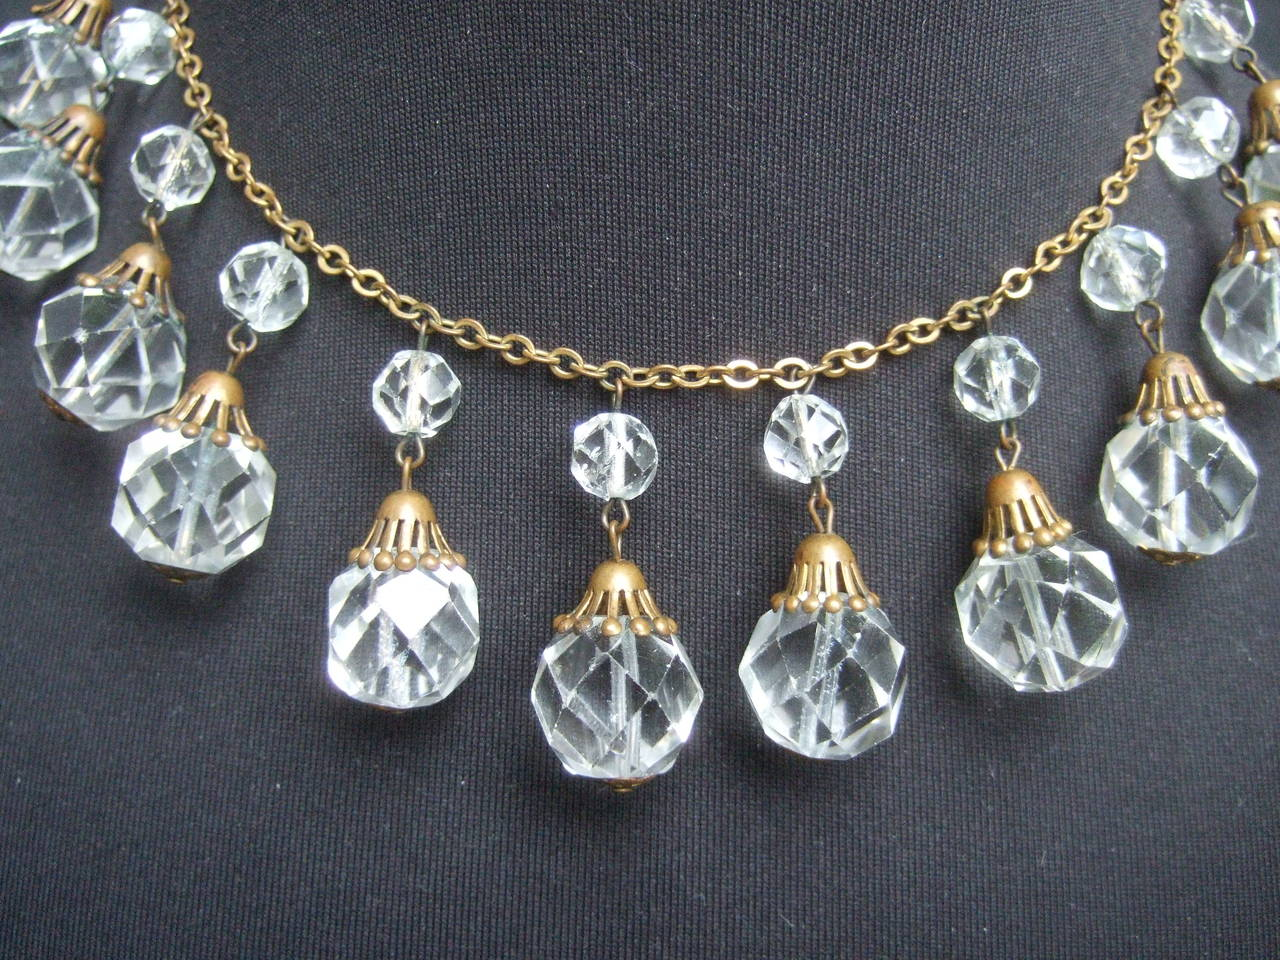 Opulent Art Deco Crystal Drop Necklace c 1940s 4